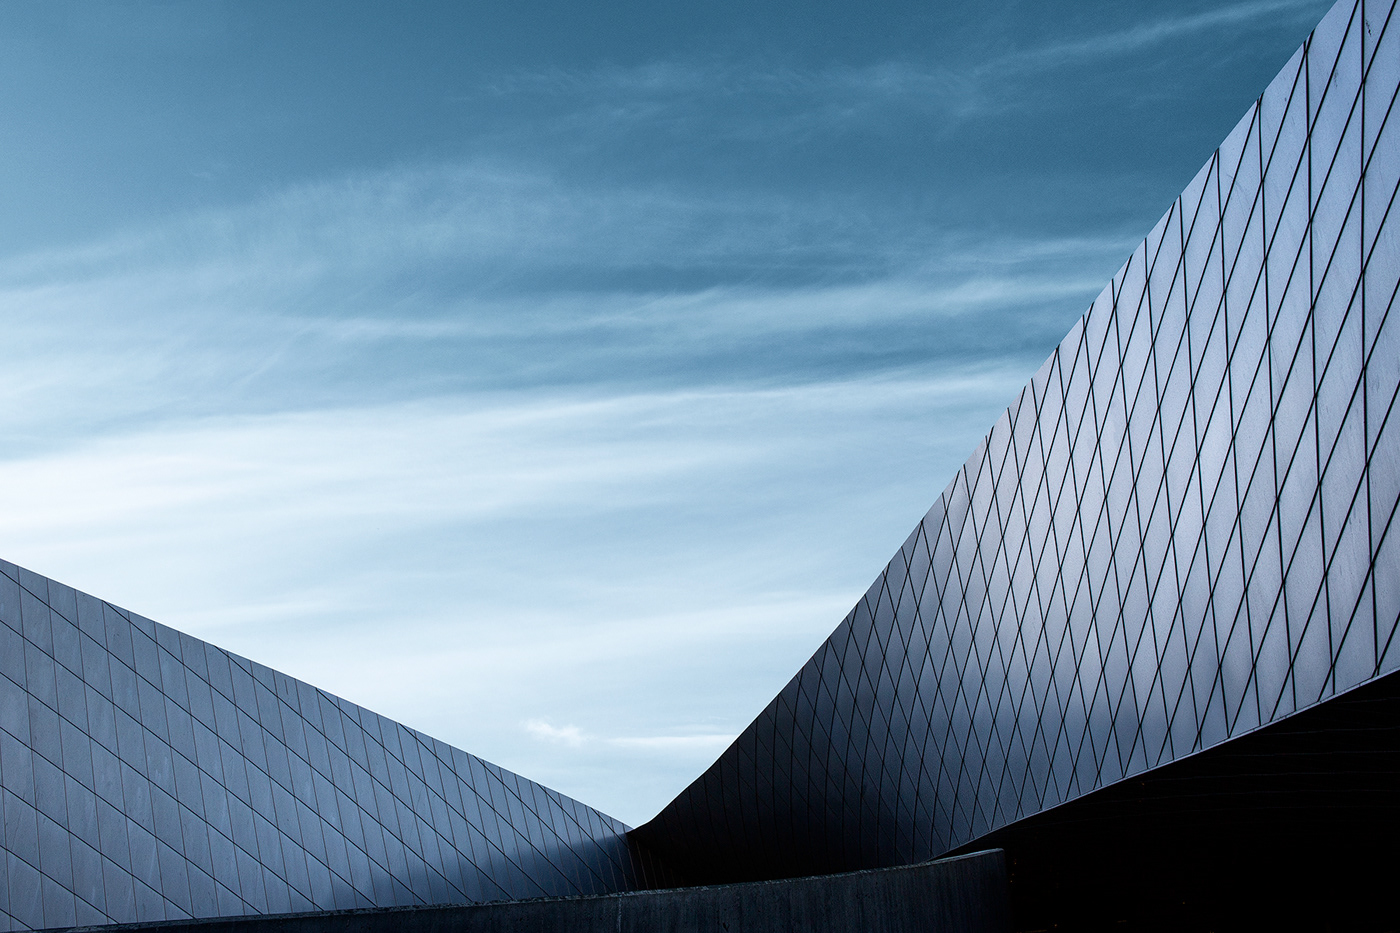 architectural design architectural photography architecture building clouds Minimalism Photography